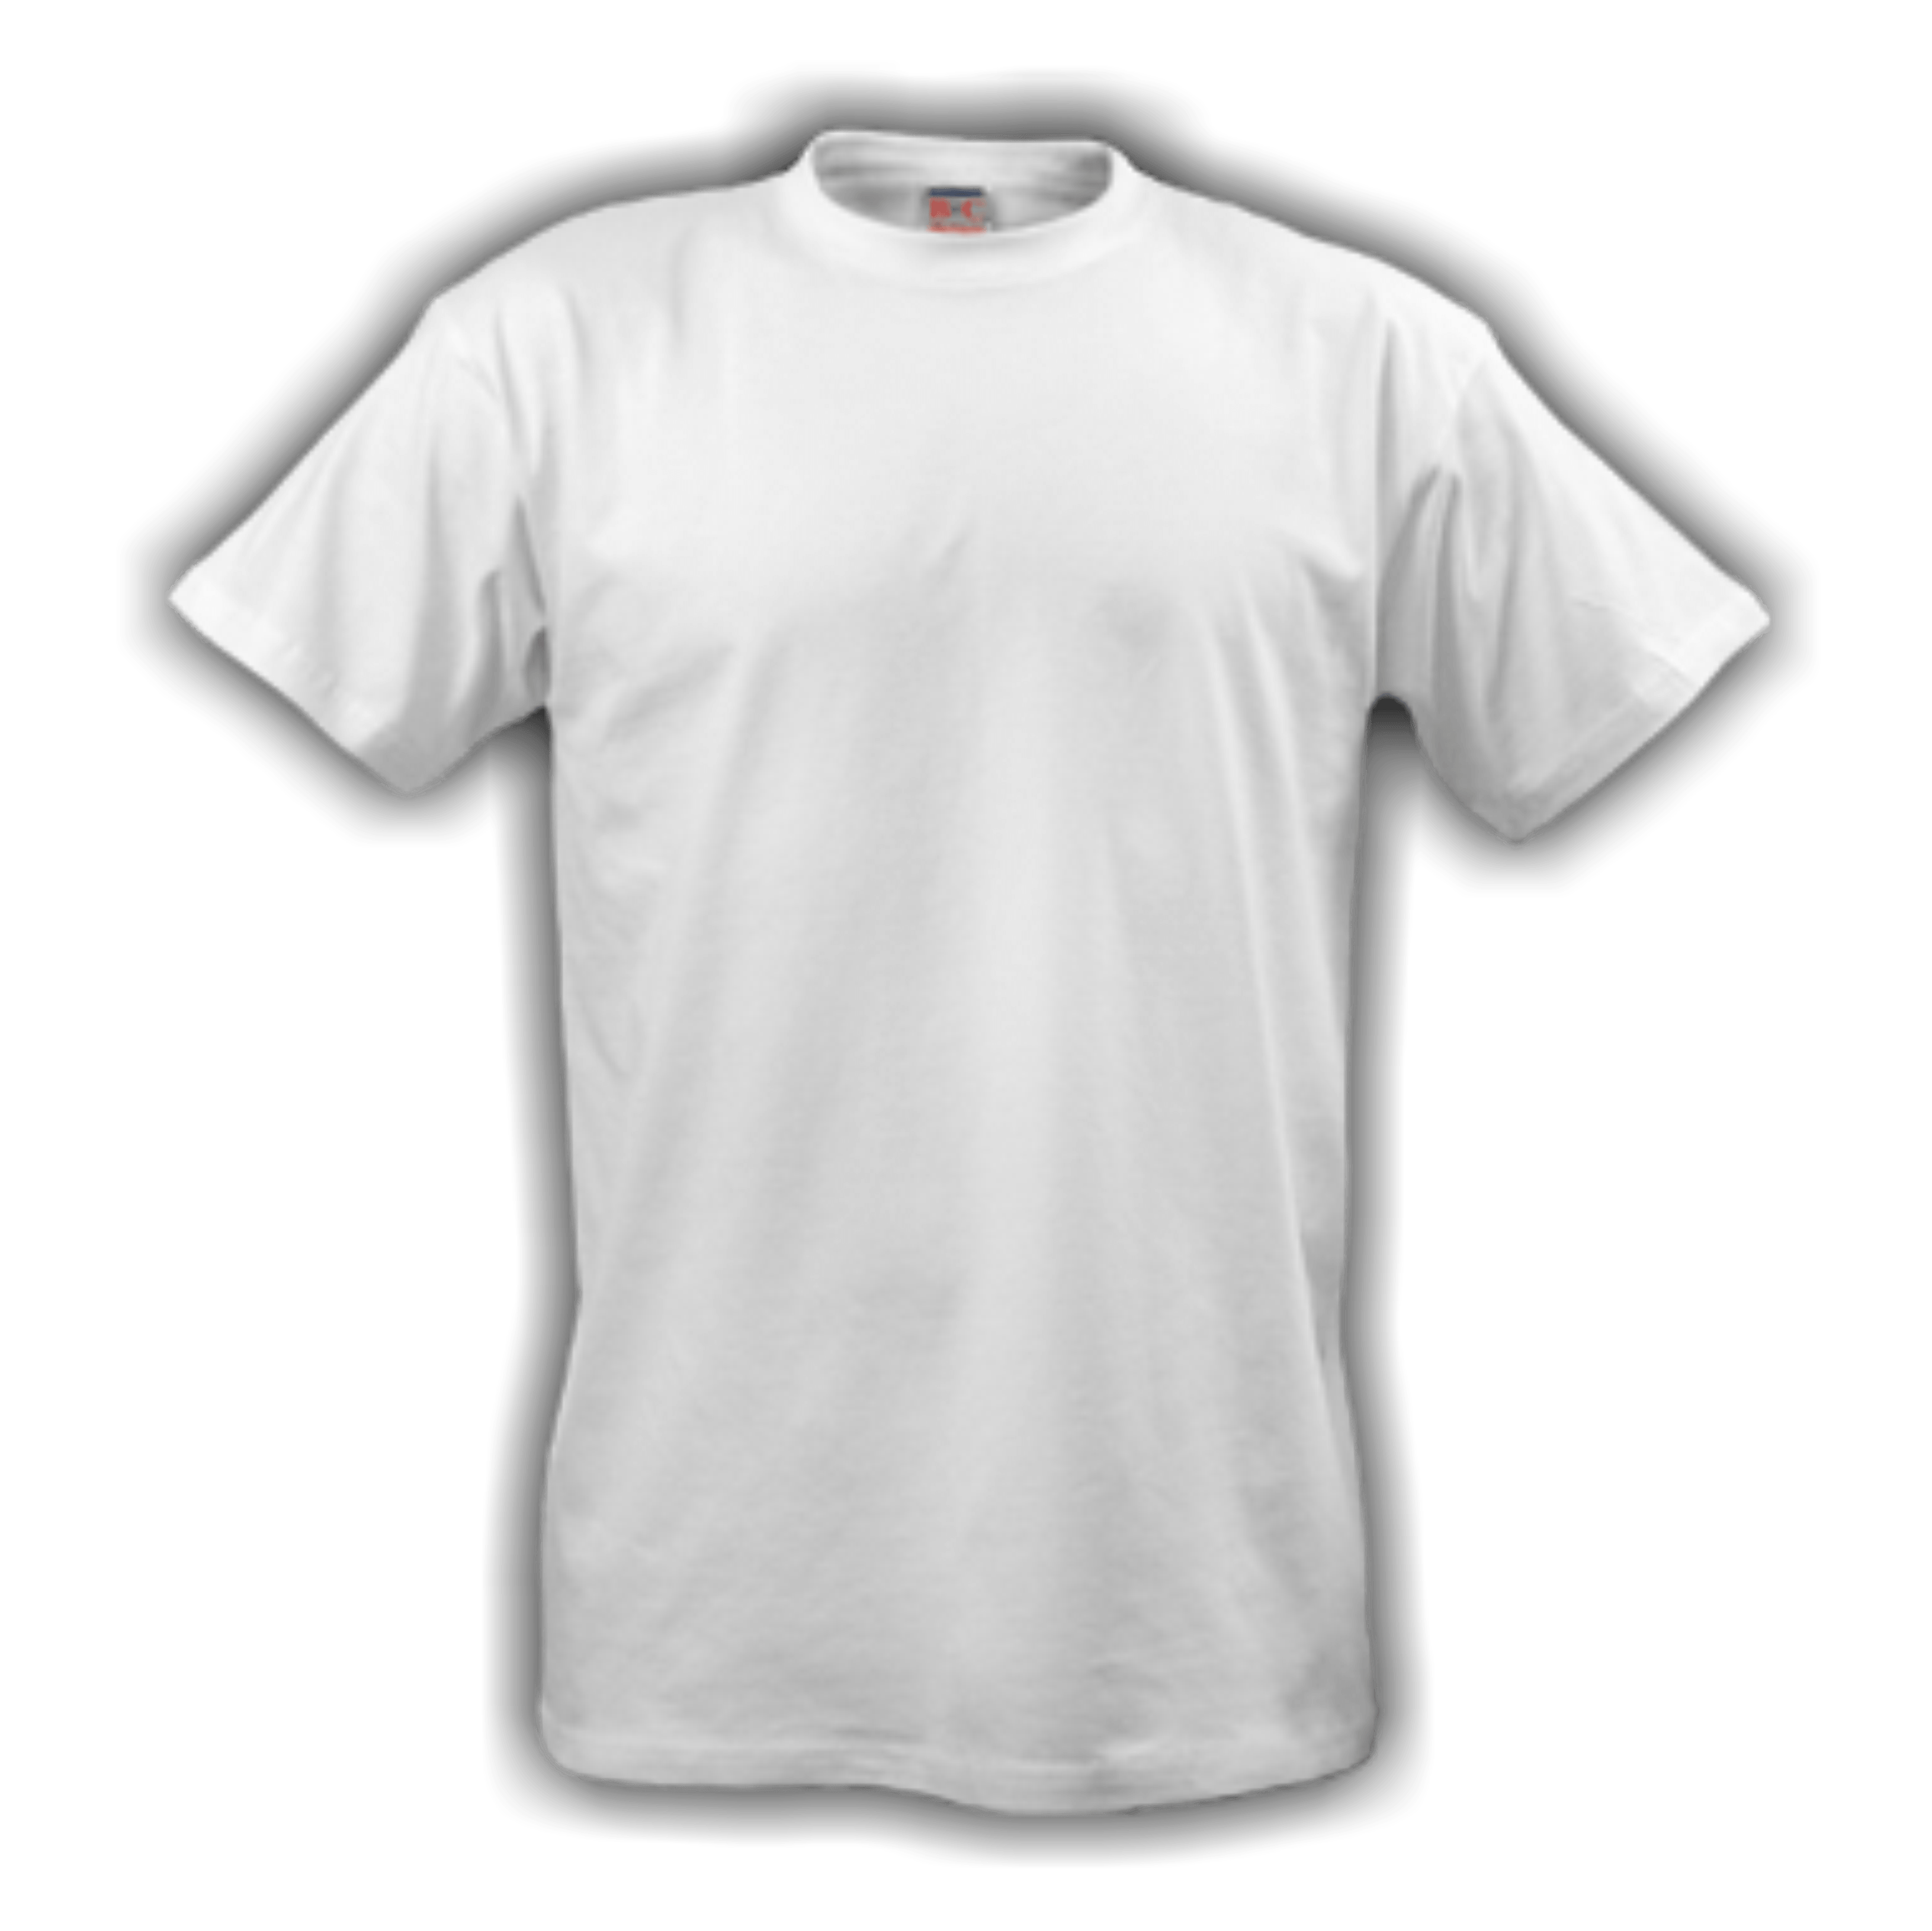 download free white t shirt png image icon favicon freepngimg t shirt png image icon favicon freepngimg